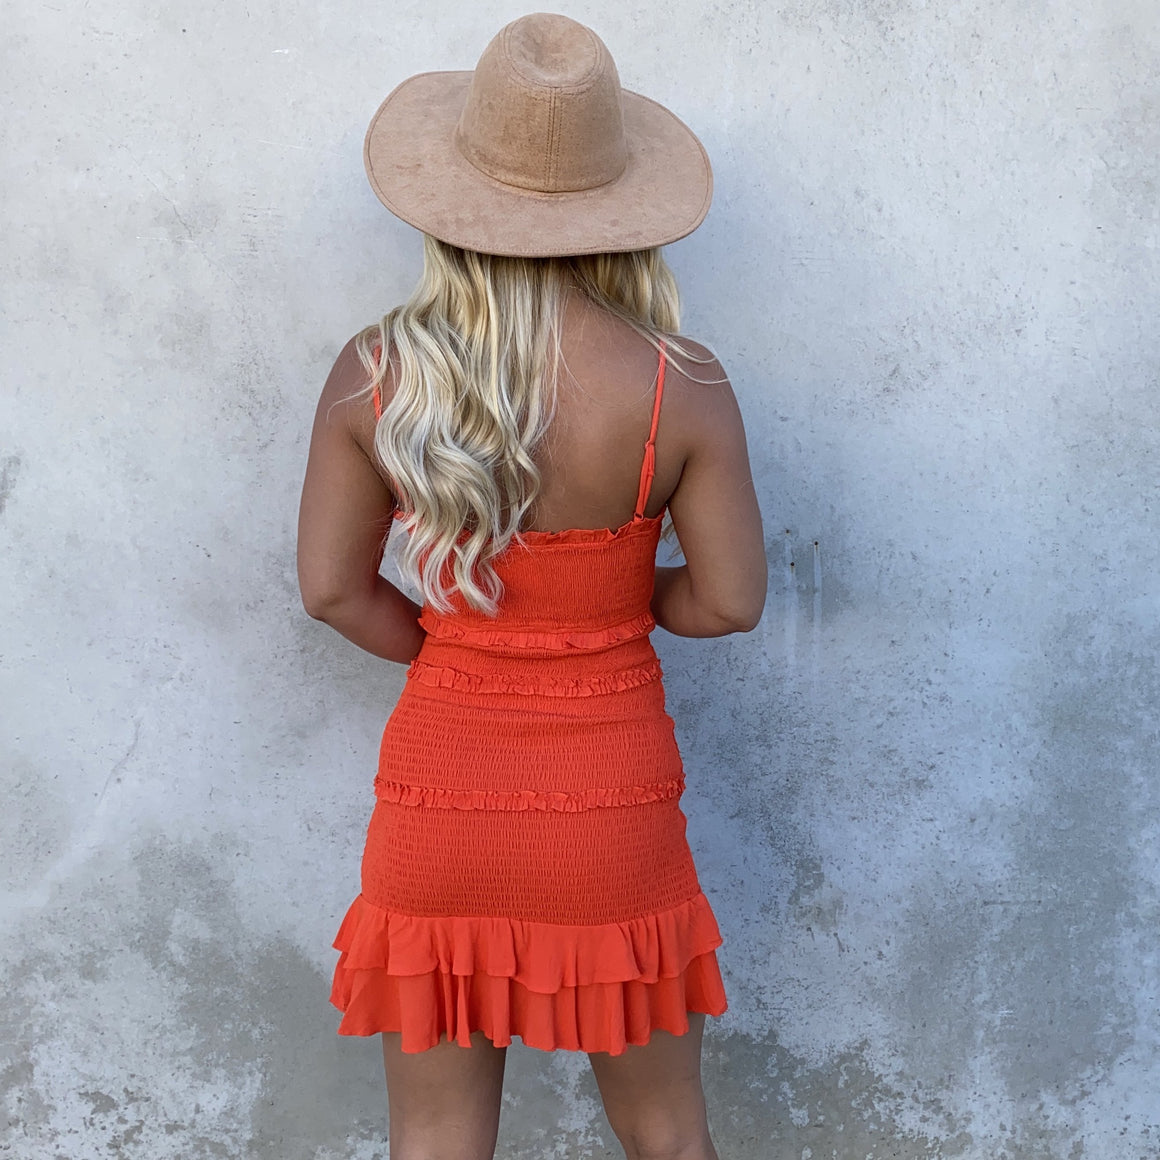 Sunset Blvd Ruffled Bodycon Dress - Dainty Hooligan